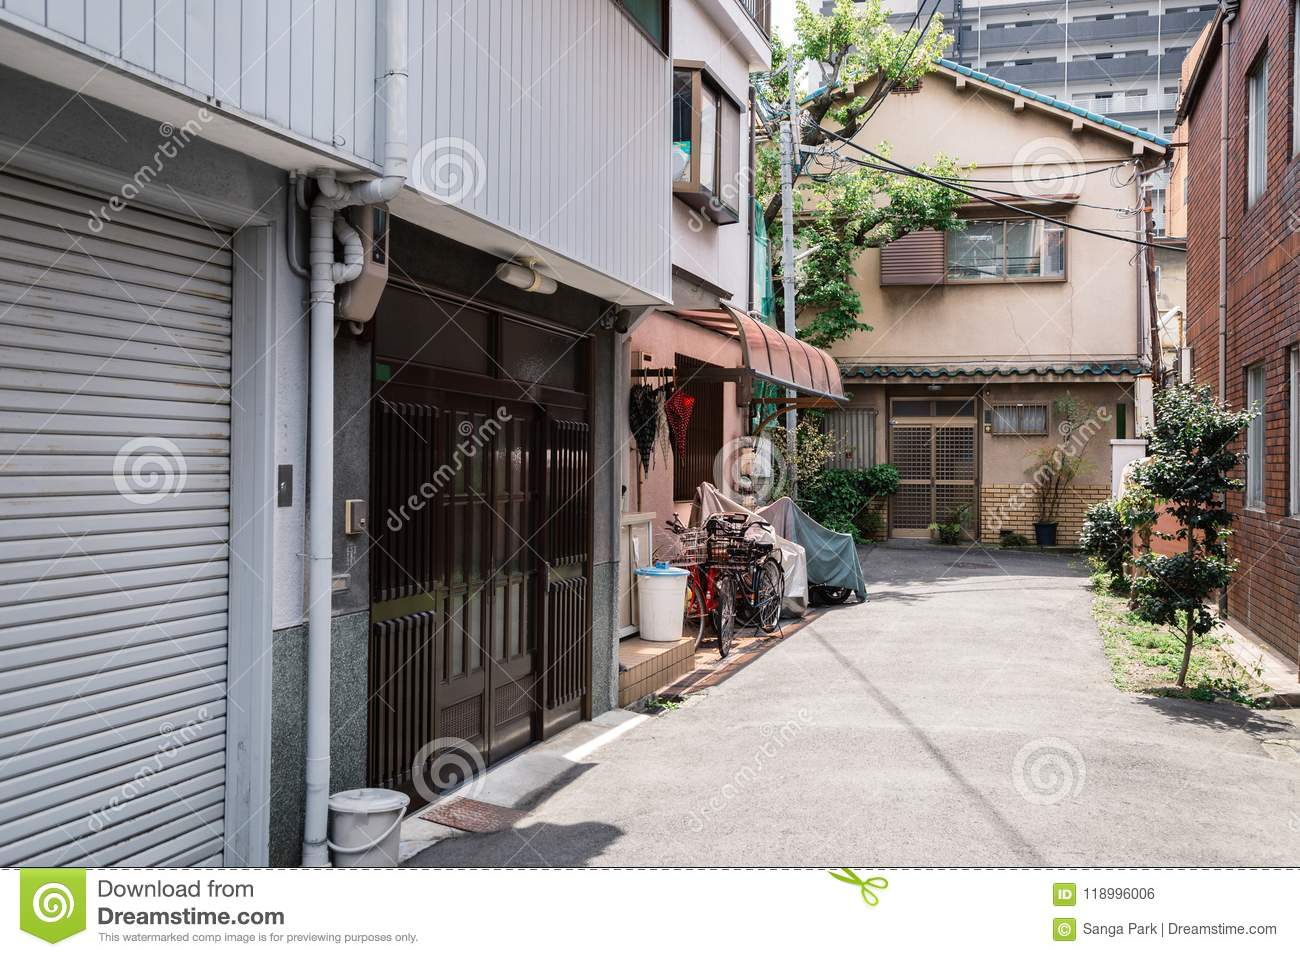 nakazaki cho street in osaka japan stock photo image of home rh dreamstime com